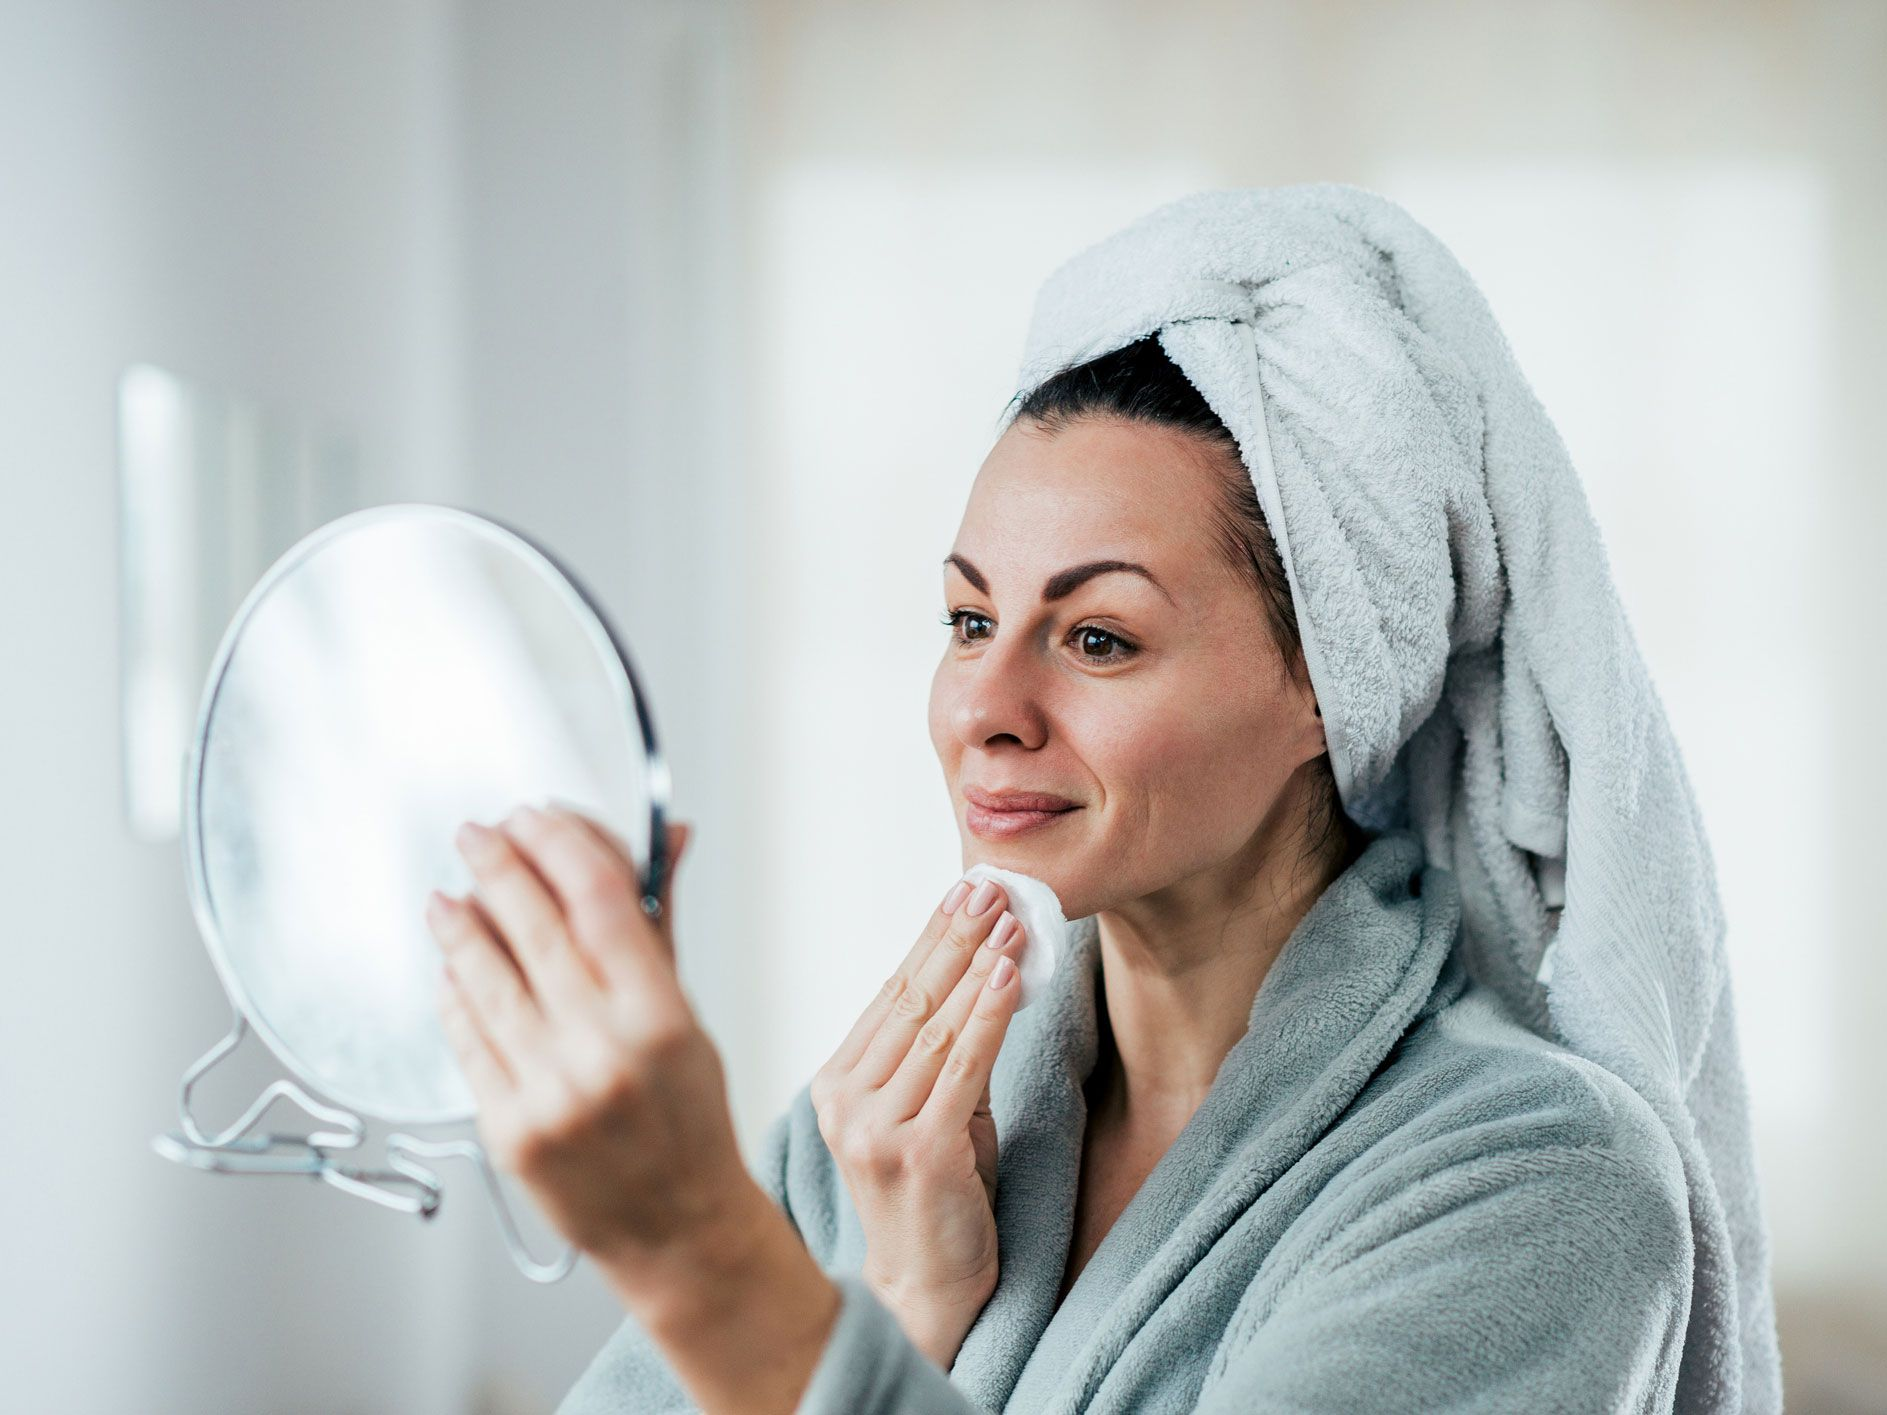 Try double cleansing for smaller pores and radiant skin